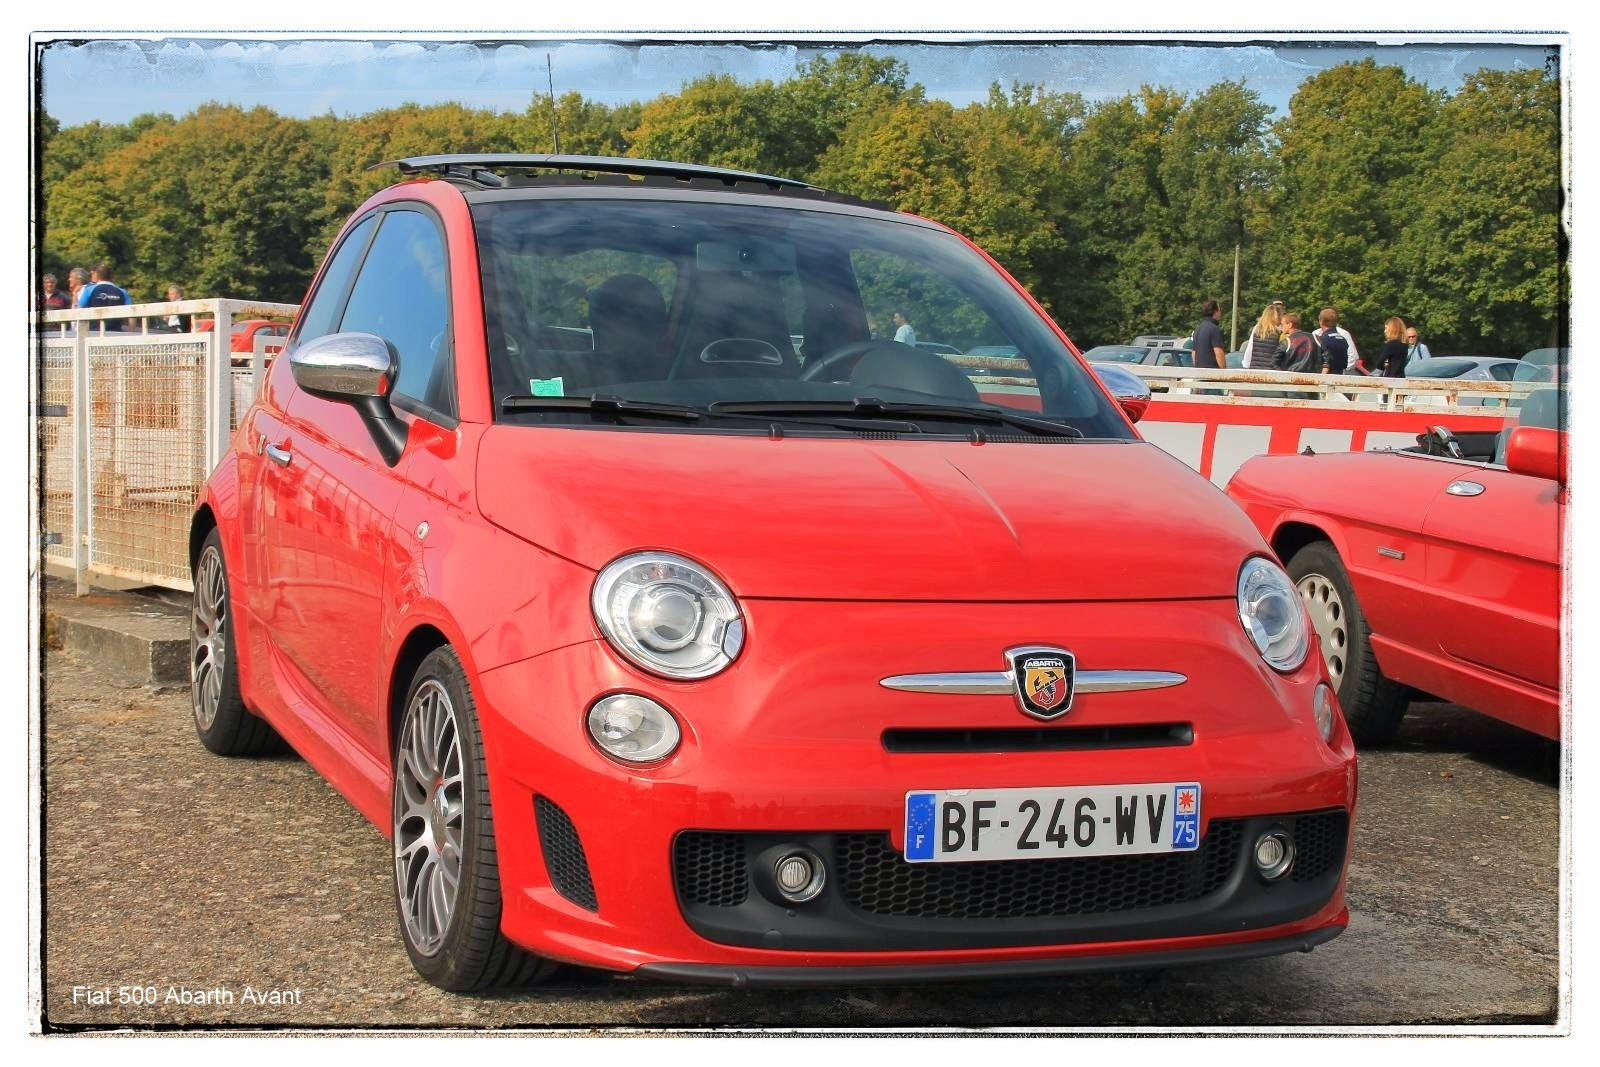 Fiat 500 Abarth Avant Italian Meeting